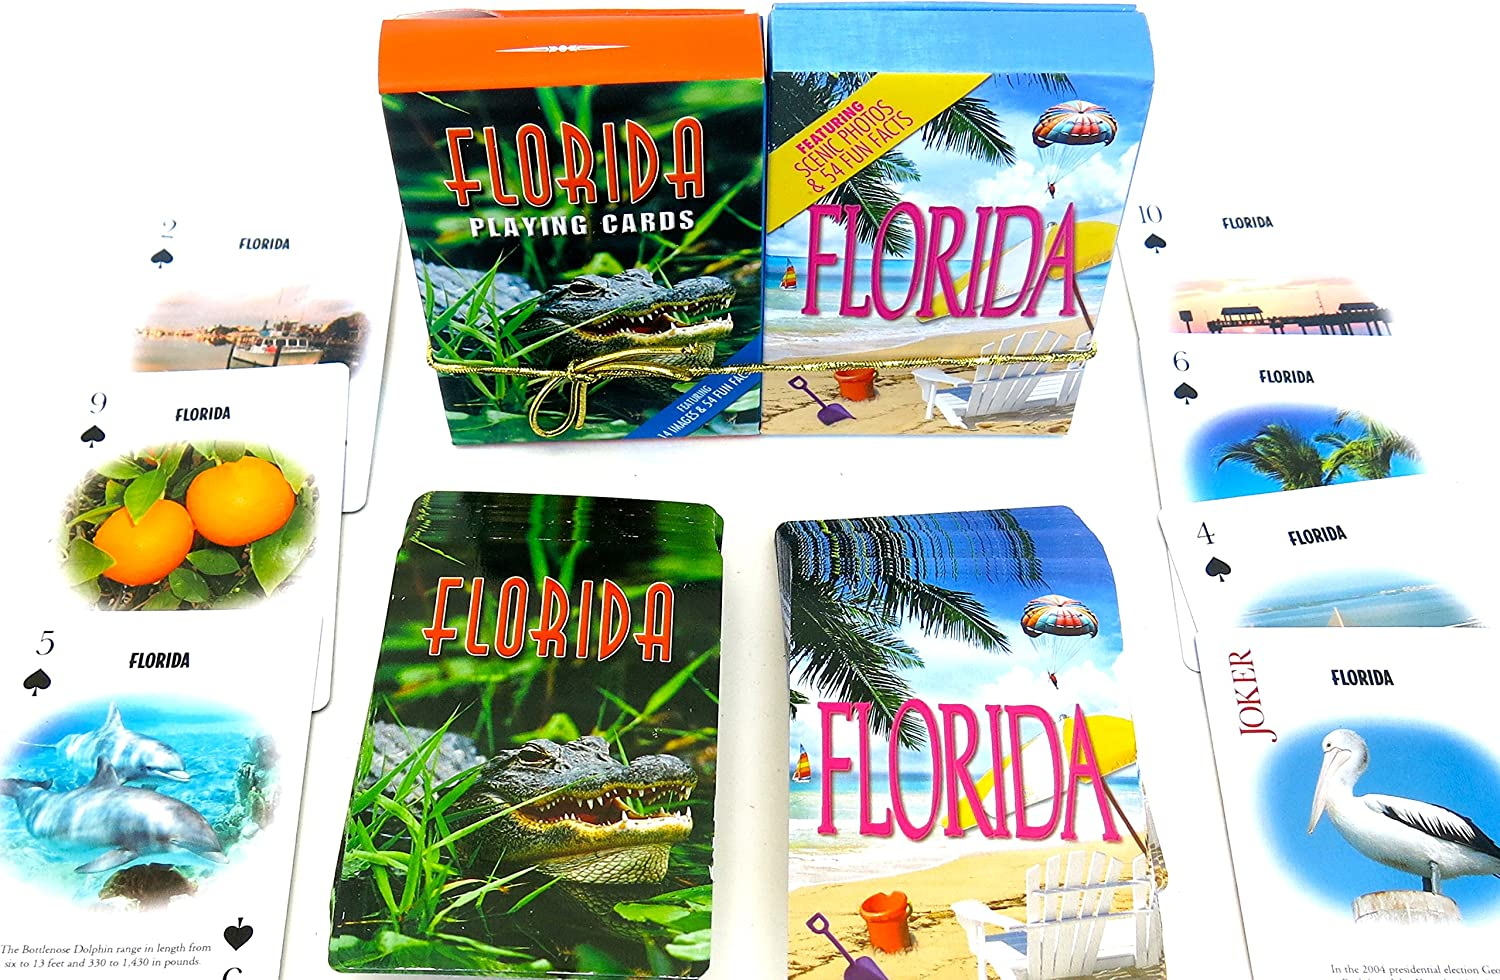 Florida, Souvenir Playing Cards, Vacation Gift. Card Faces Feature Multiple Landmarks, Ousttanding Tourist Gift. The Two Deck Set Includes a gold Gift Ribbon, Beach